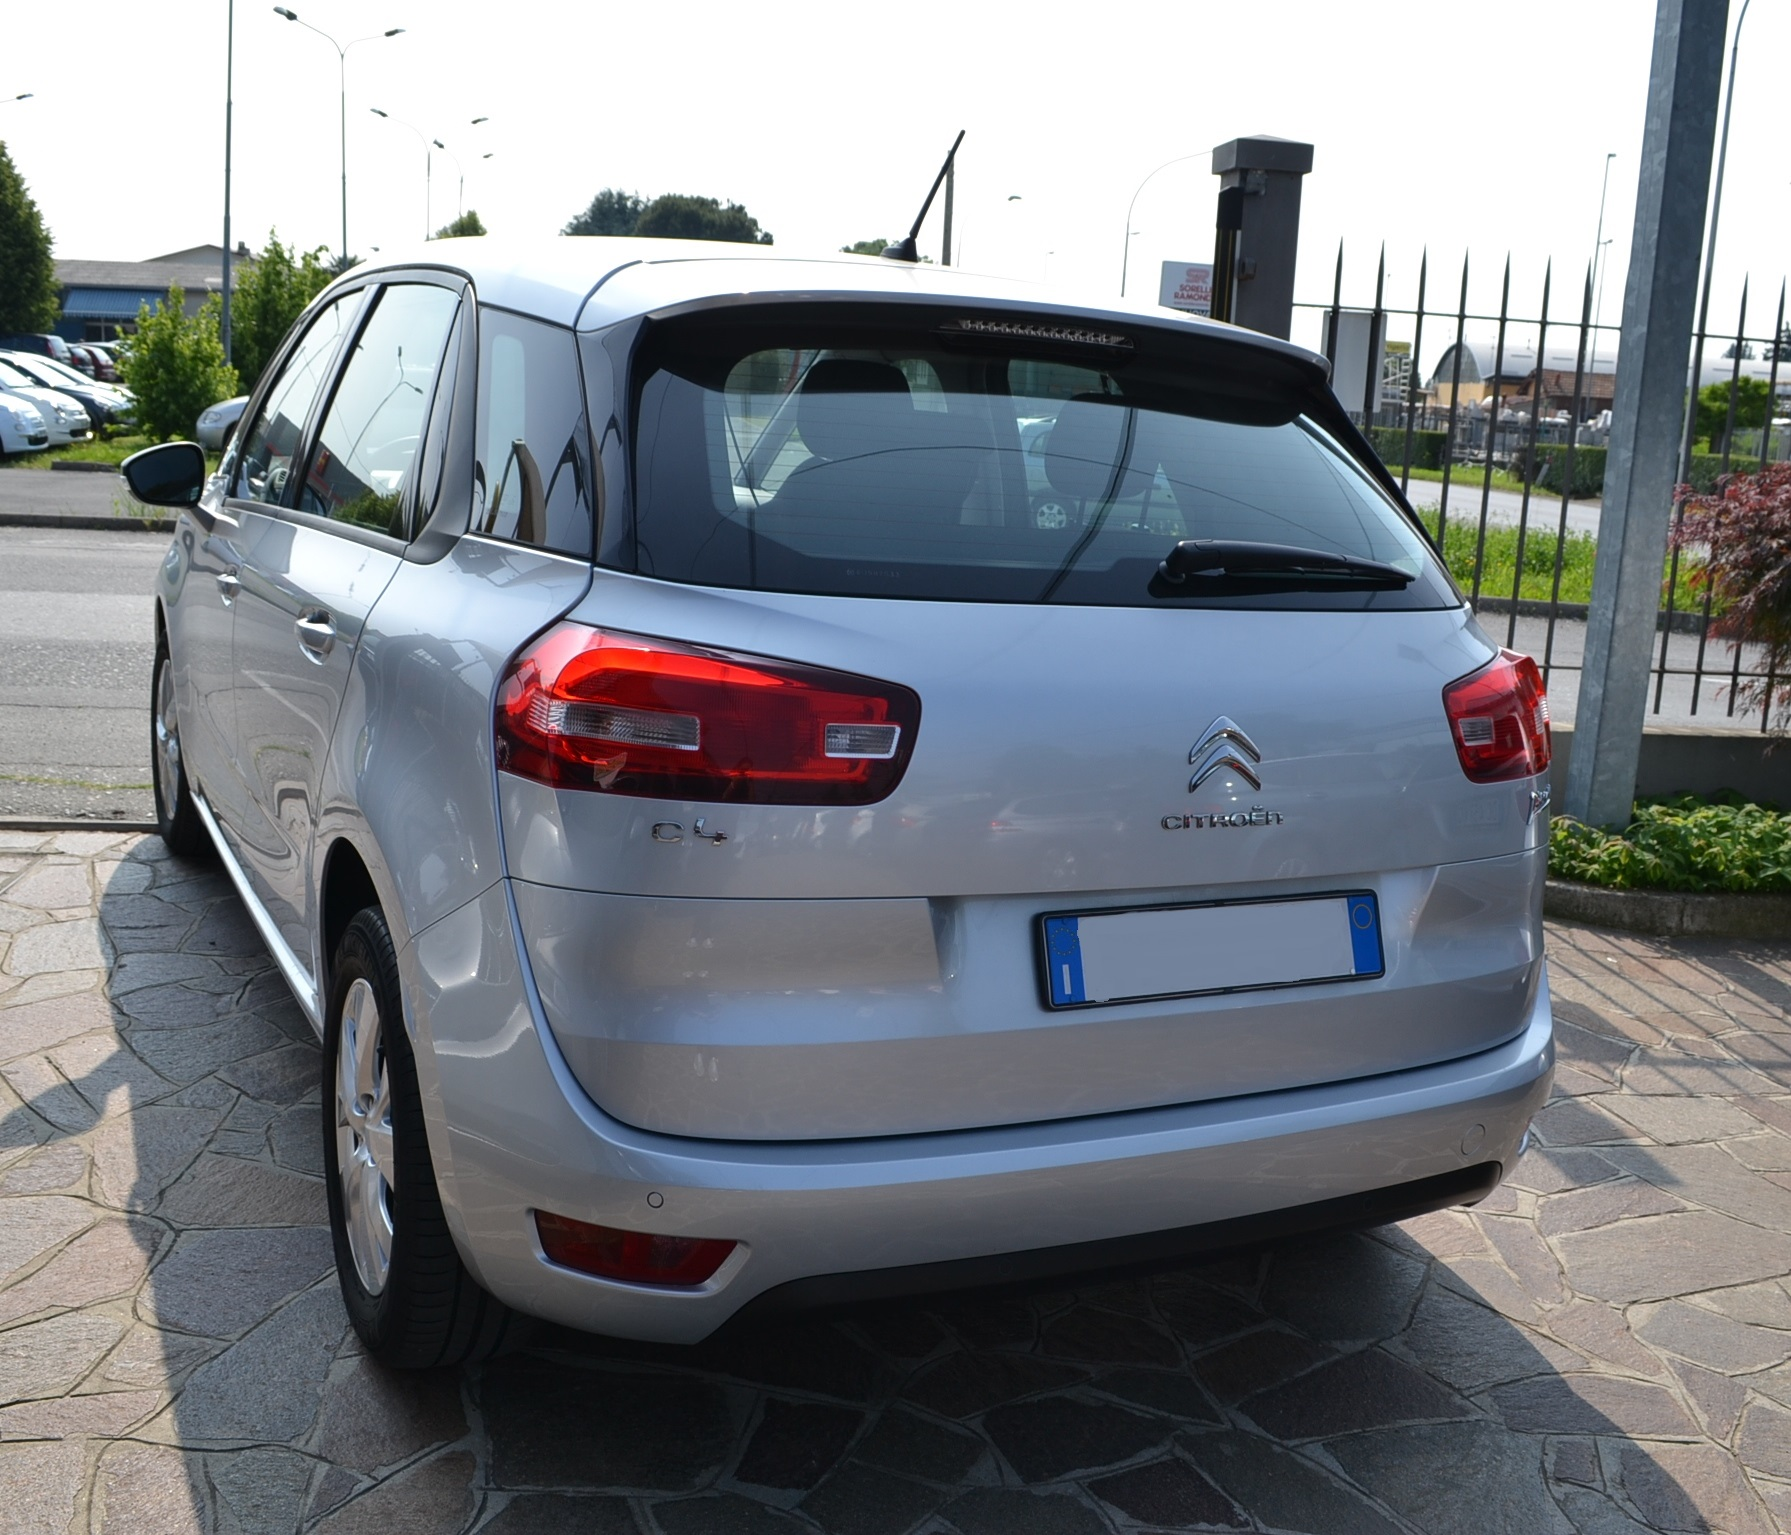 Citroen c4 picasso 1.6 seduction 115cv